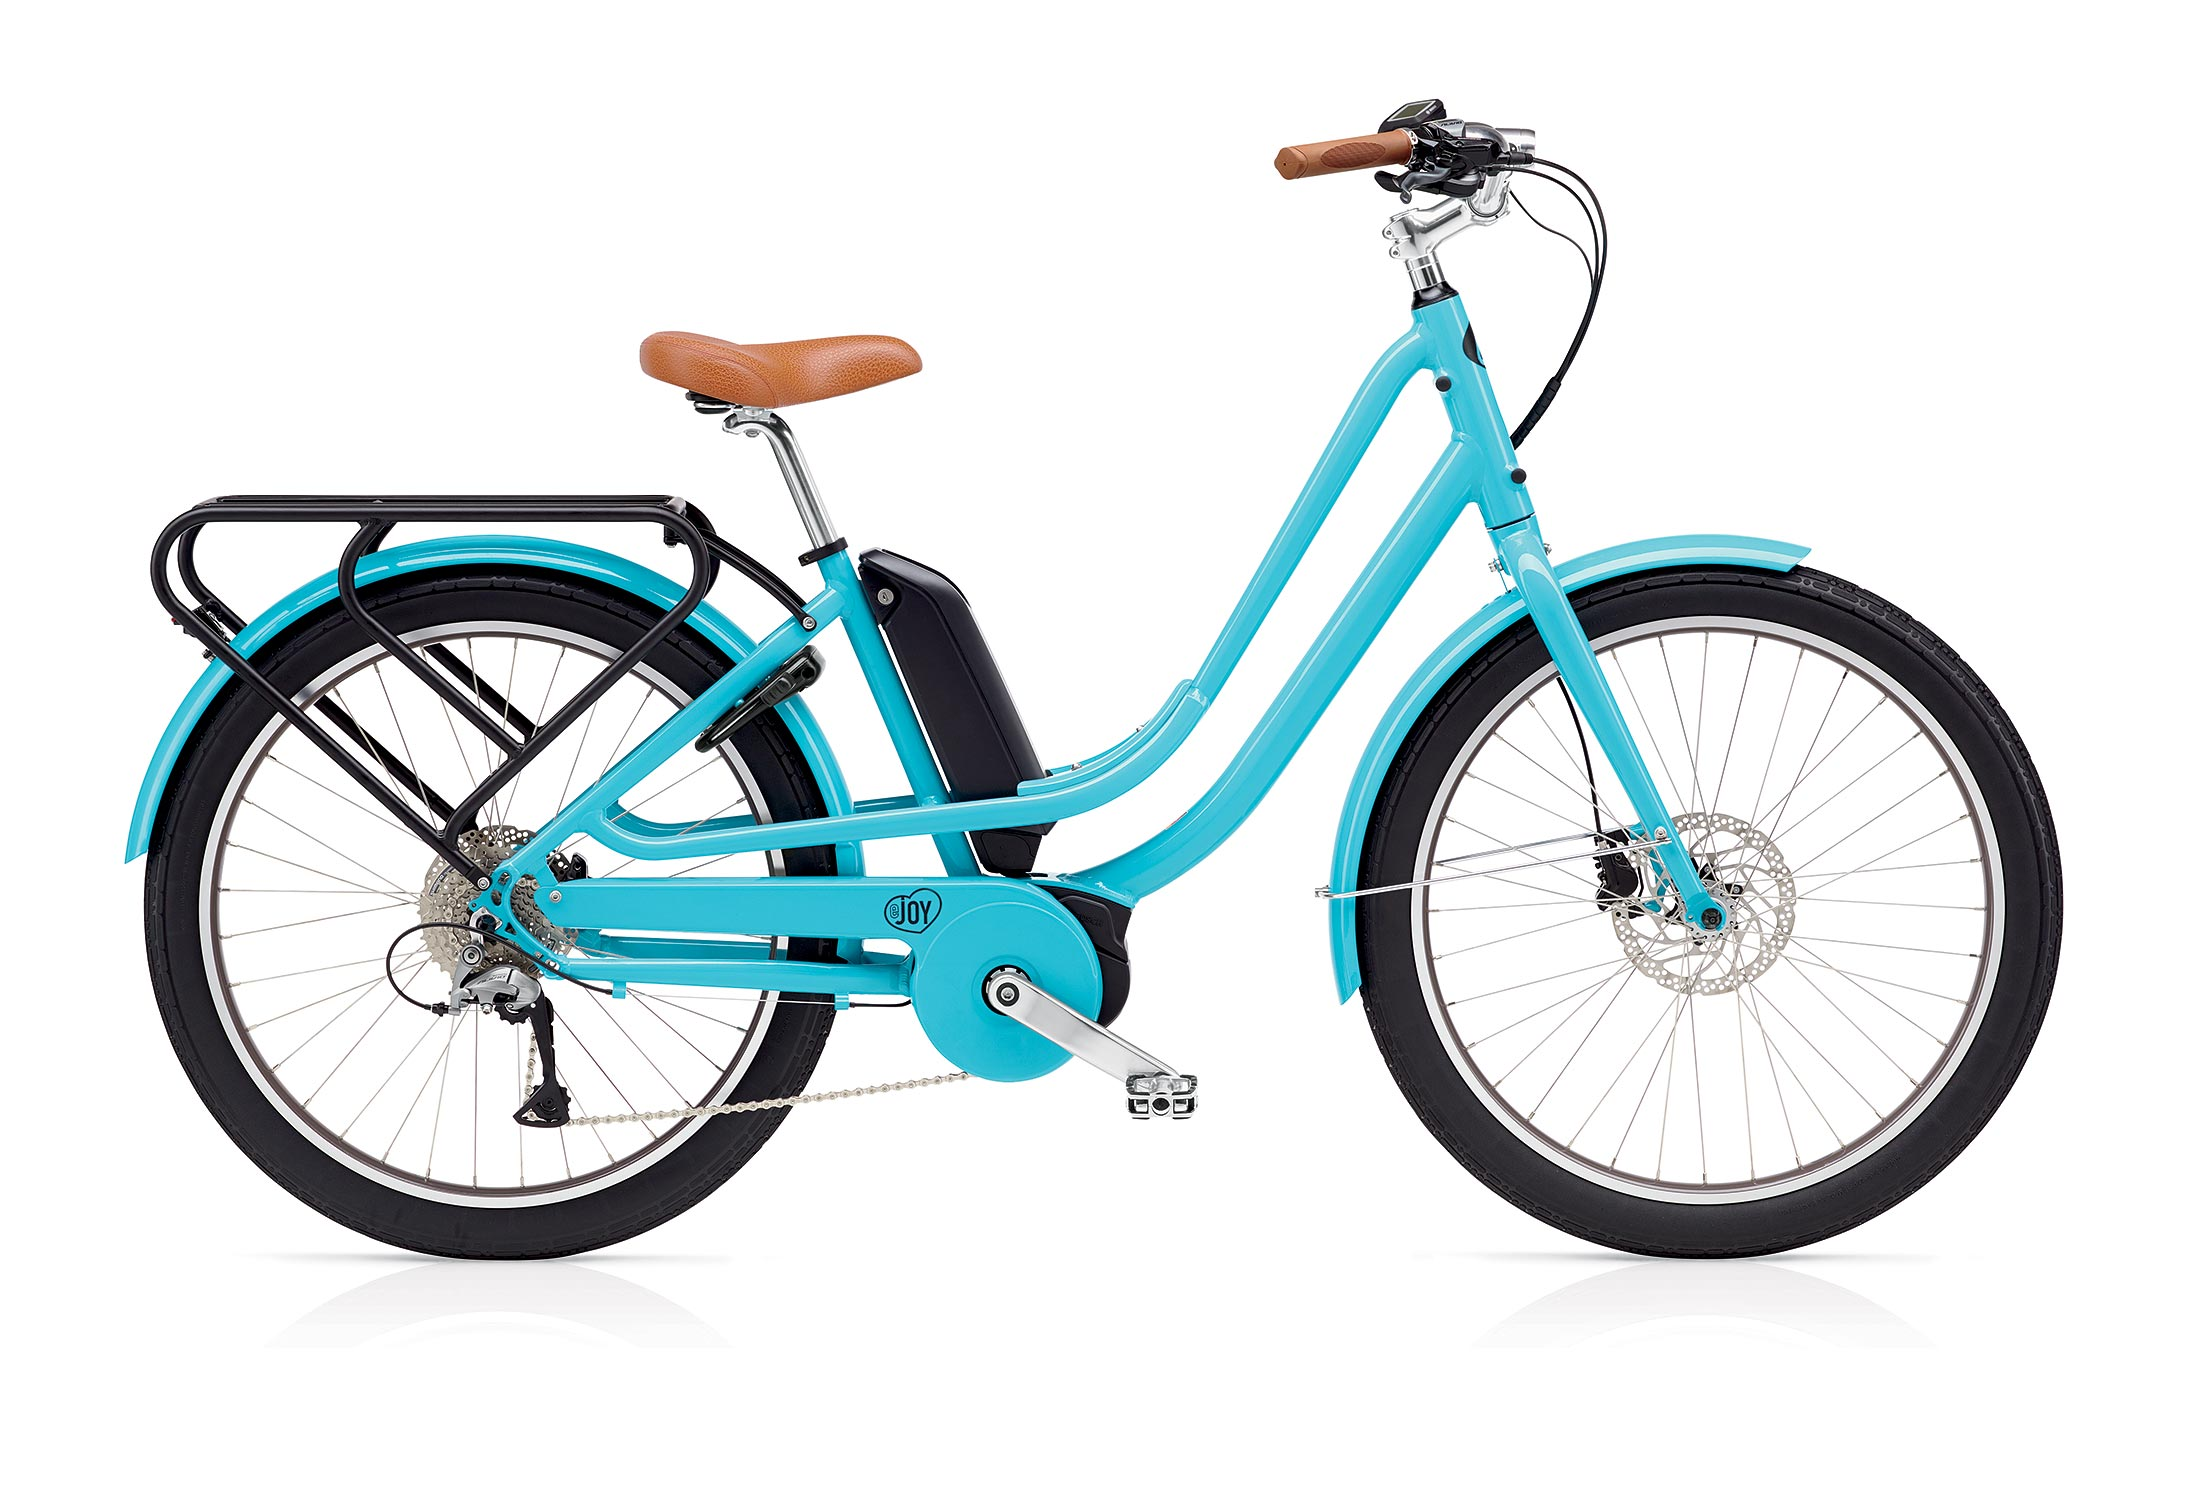 ejoy 9d, benno, electric bicycles, e-bikes, electric bikes, near me, arizona, phoenix